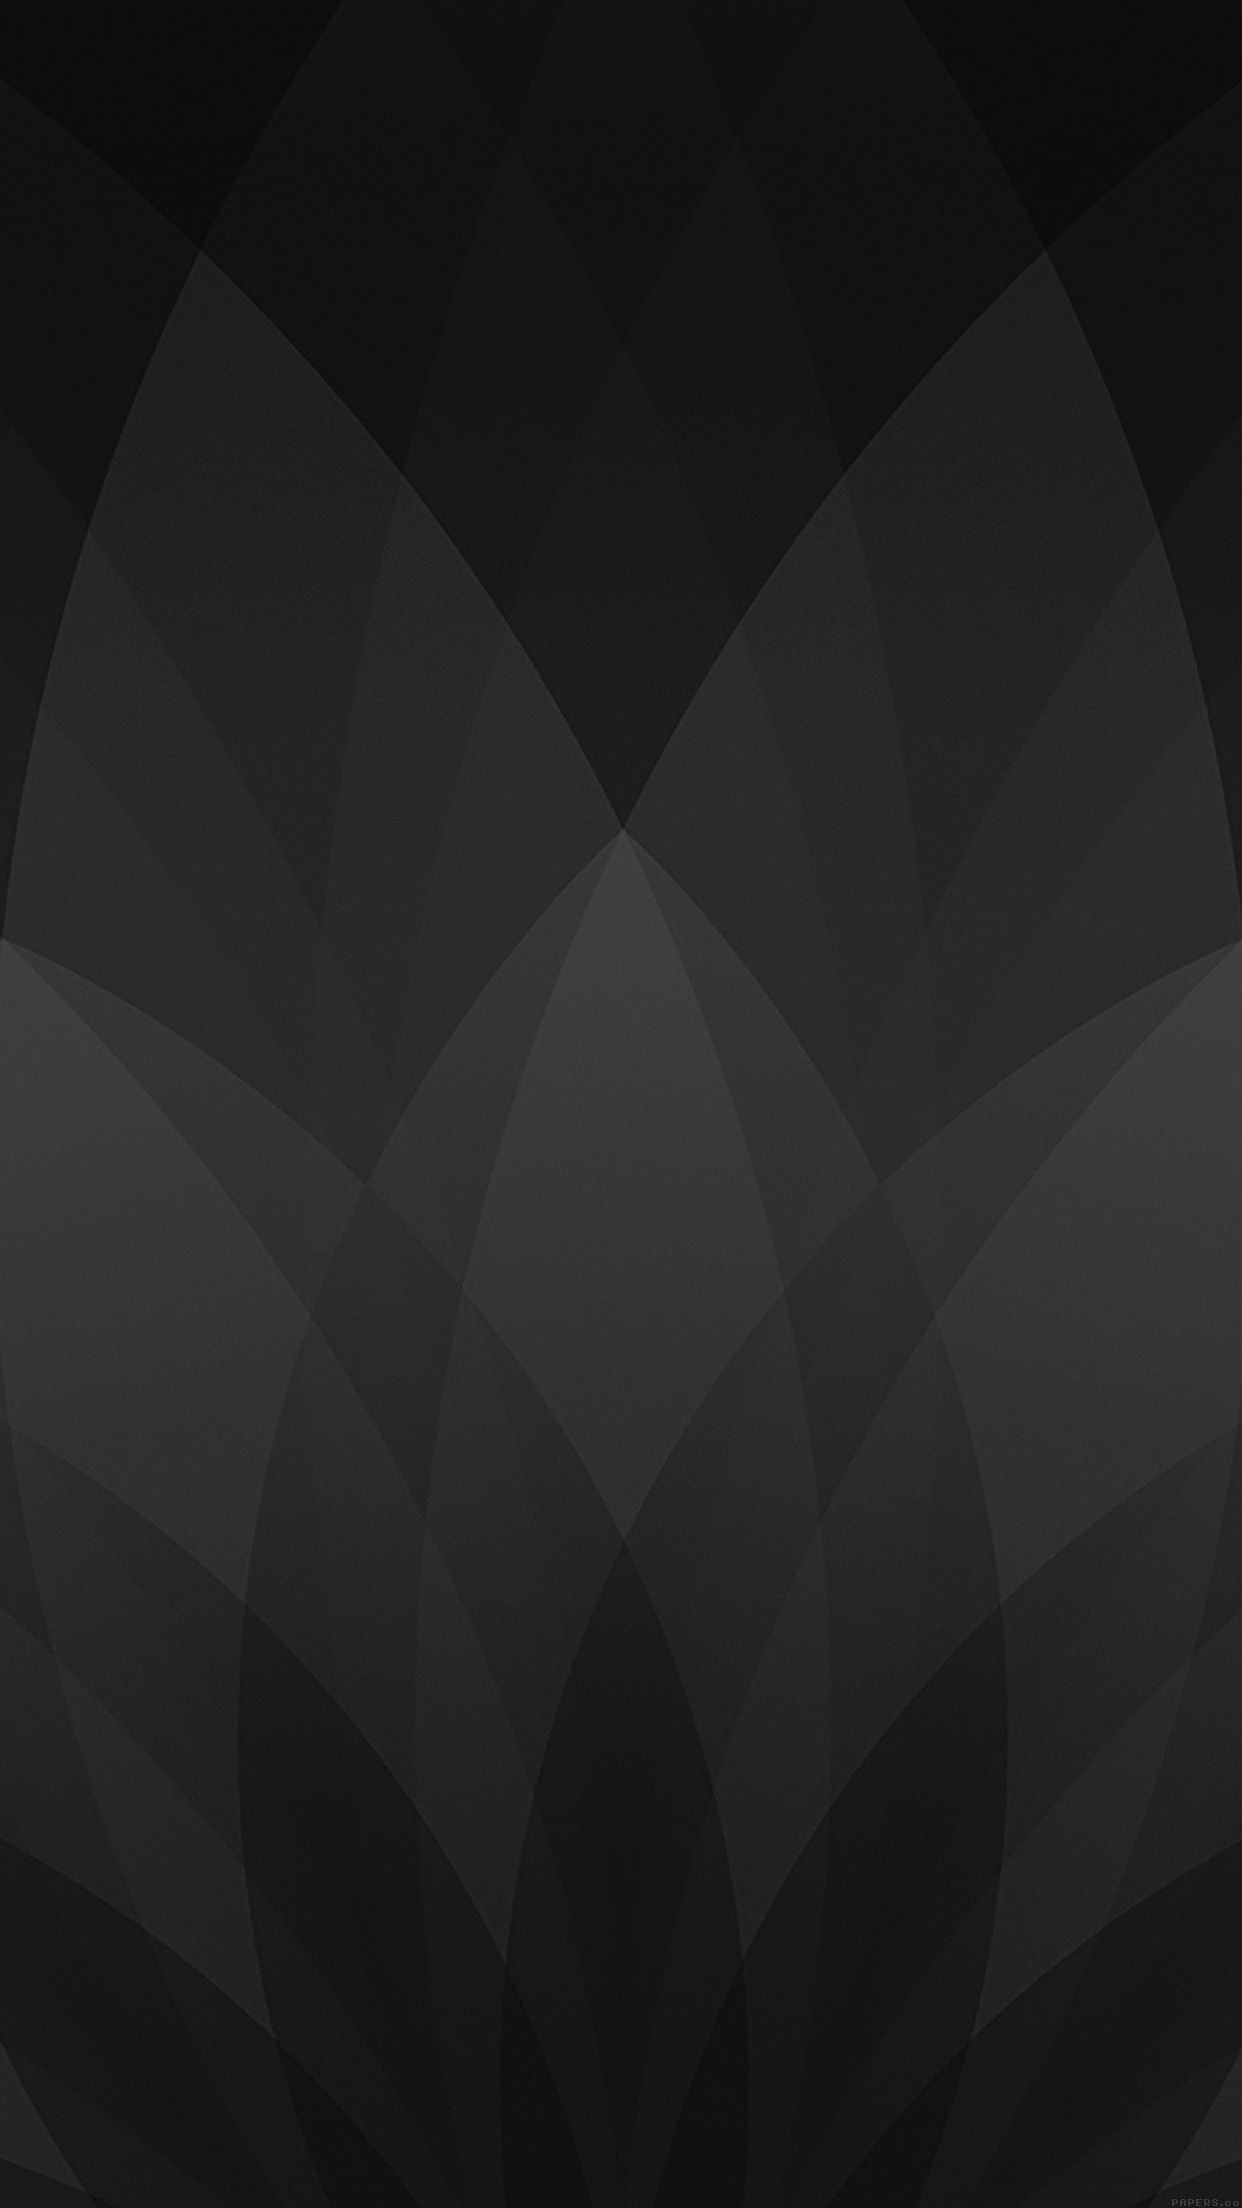 Grey Iphone Wallpapers Top Free Grey Iphone Backgrounds